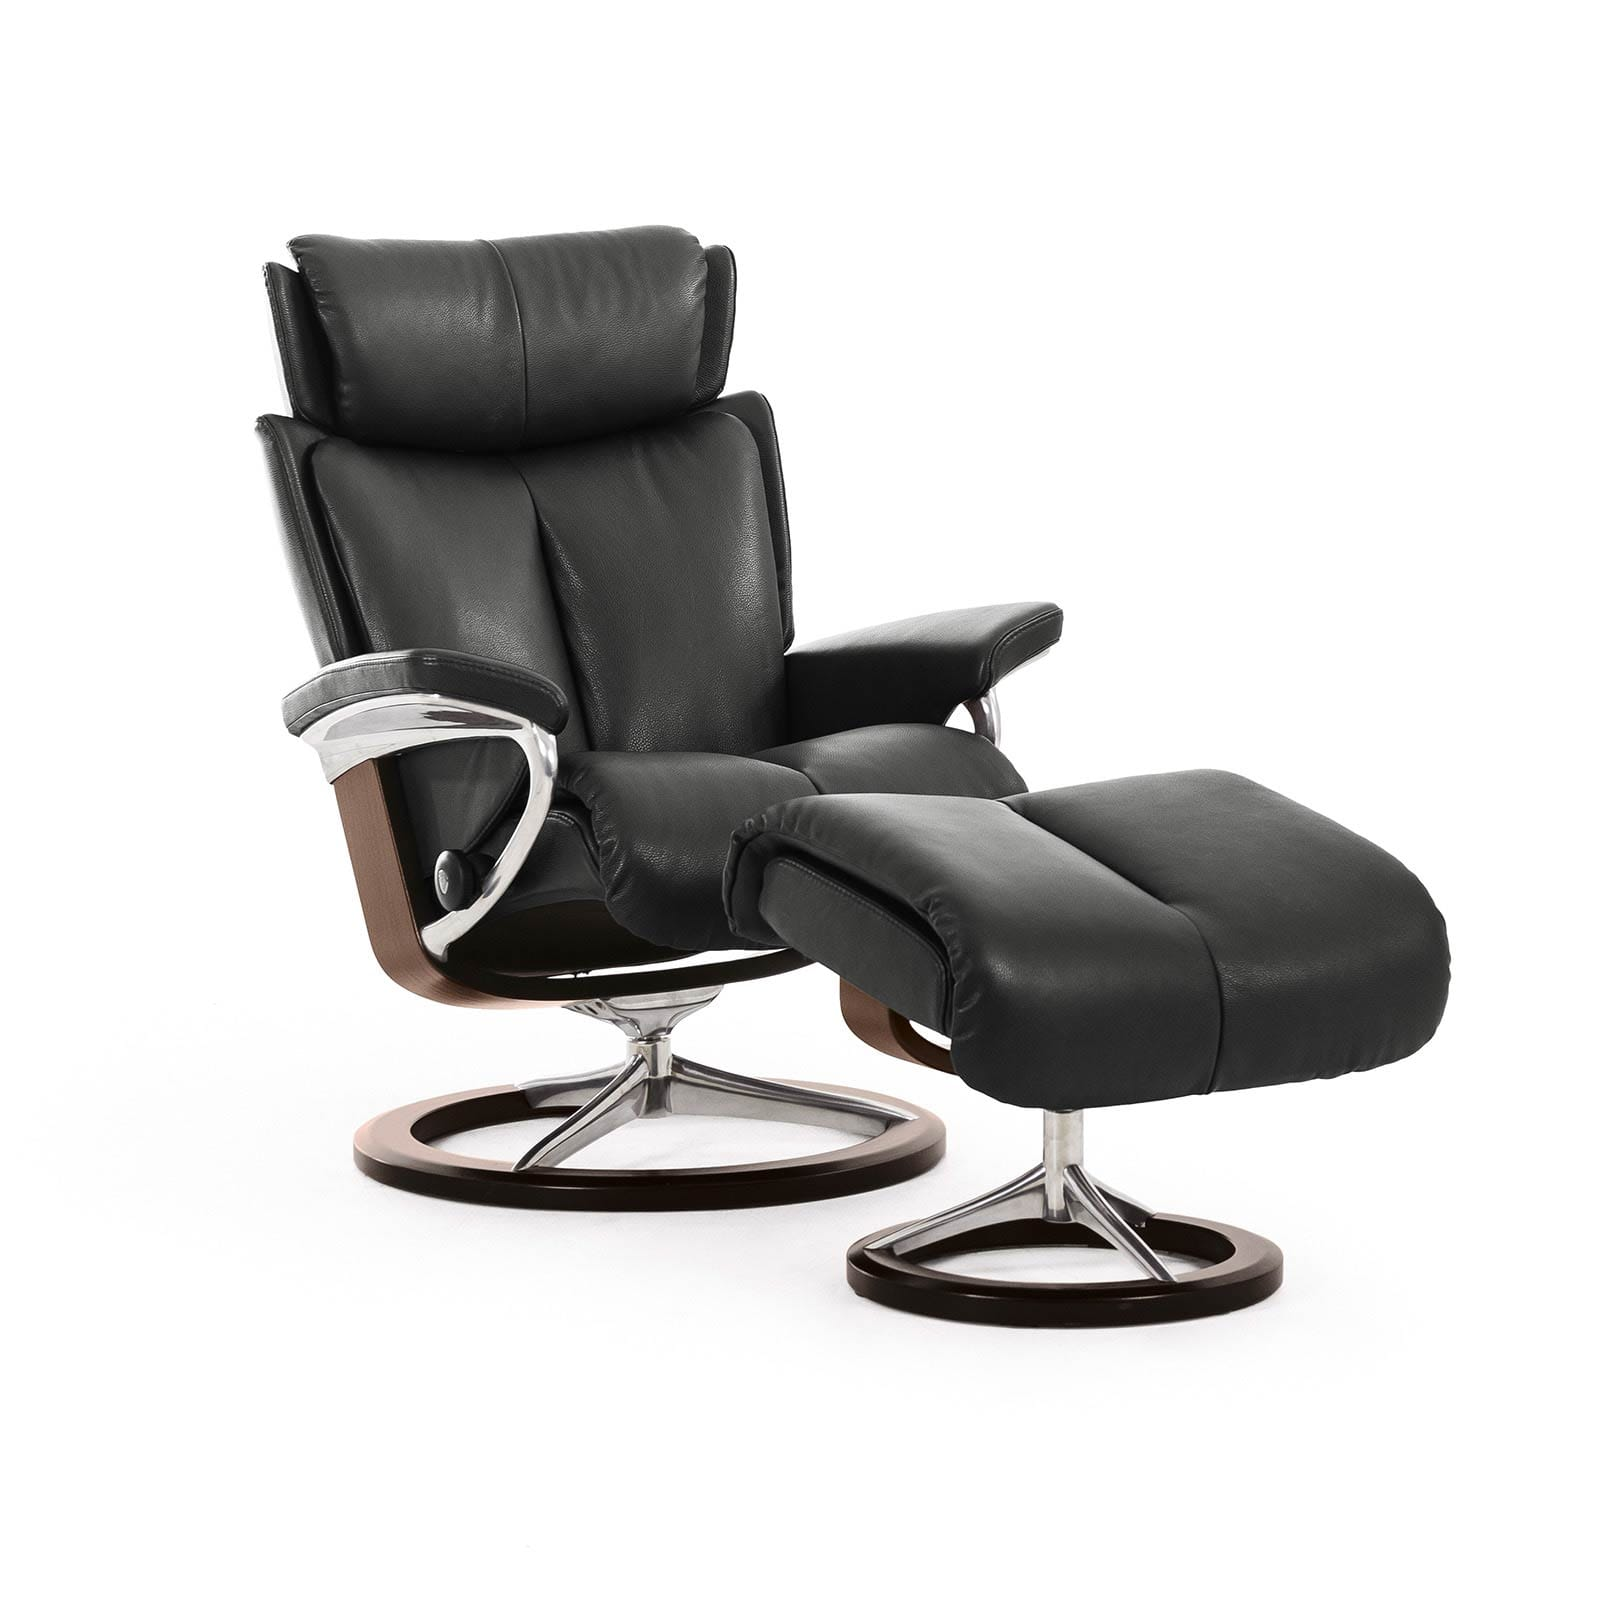 Stressless Sessel Günstig Stressless Sessel Magic Metal Grey Paloma Signature Walnuss Ohne Hocker